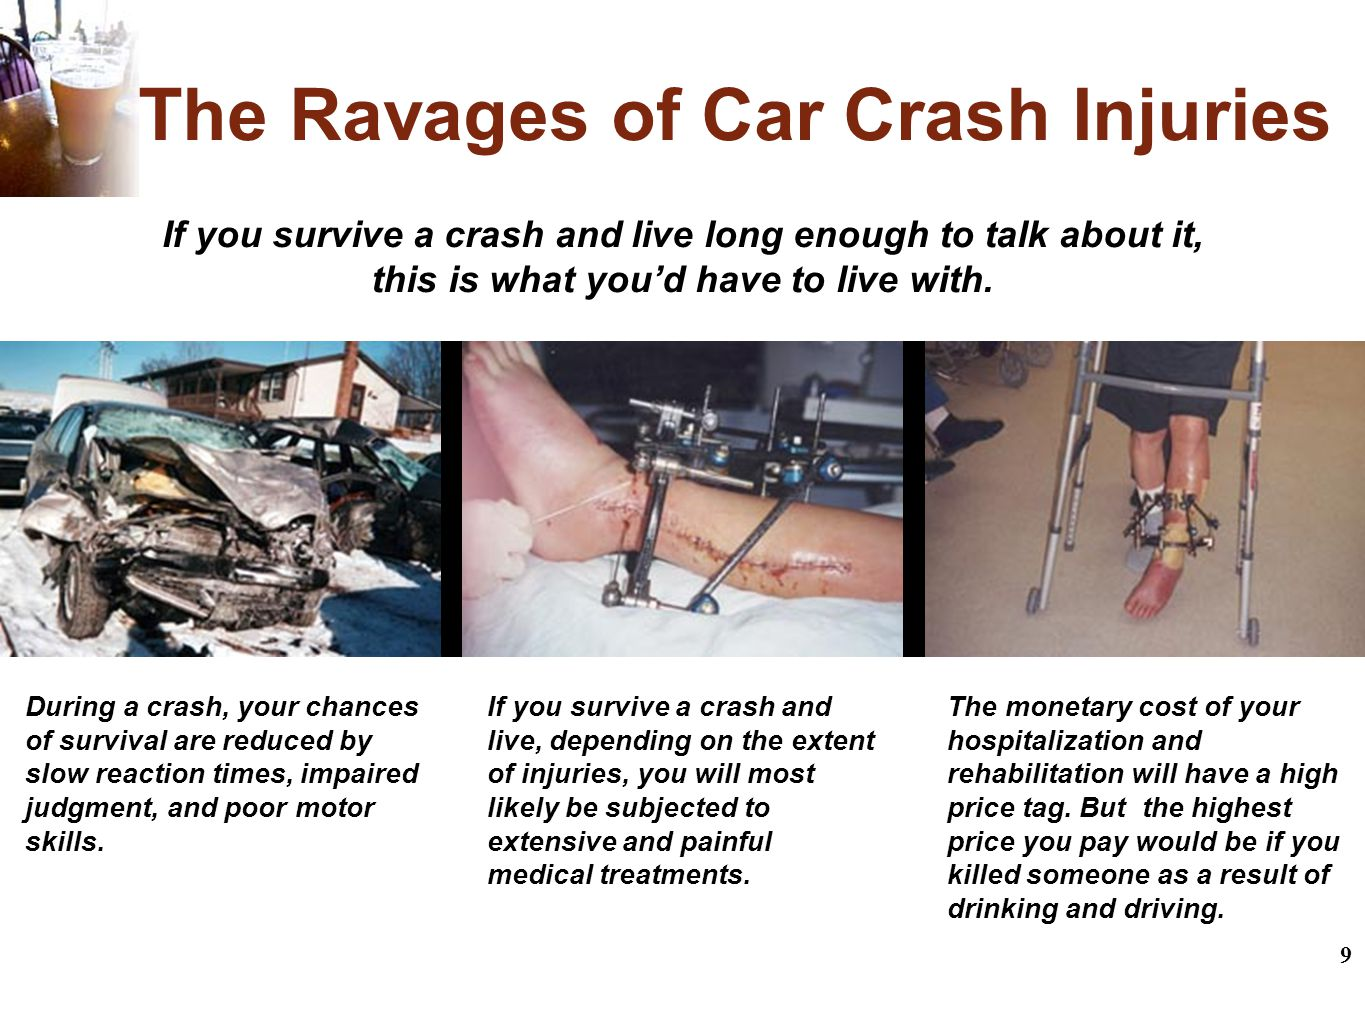 9 The Ravages of Car Crash Injuries If you survive a crash and live long enough to talk about it, this is what you'd have to live with.